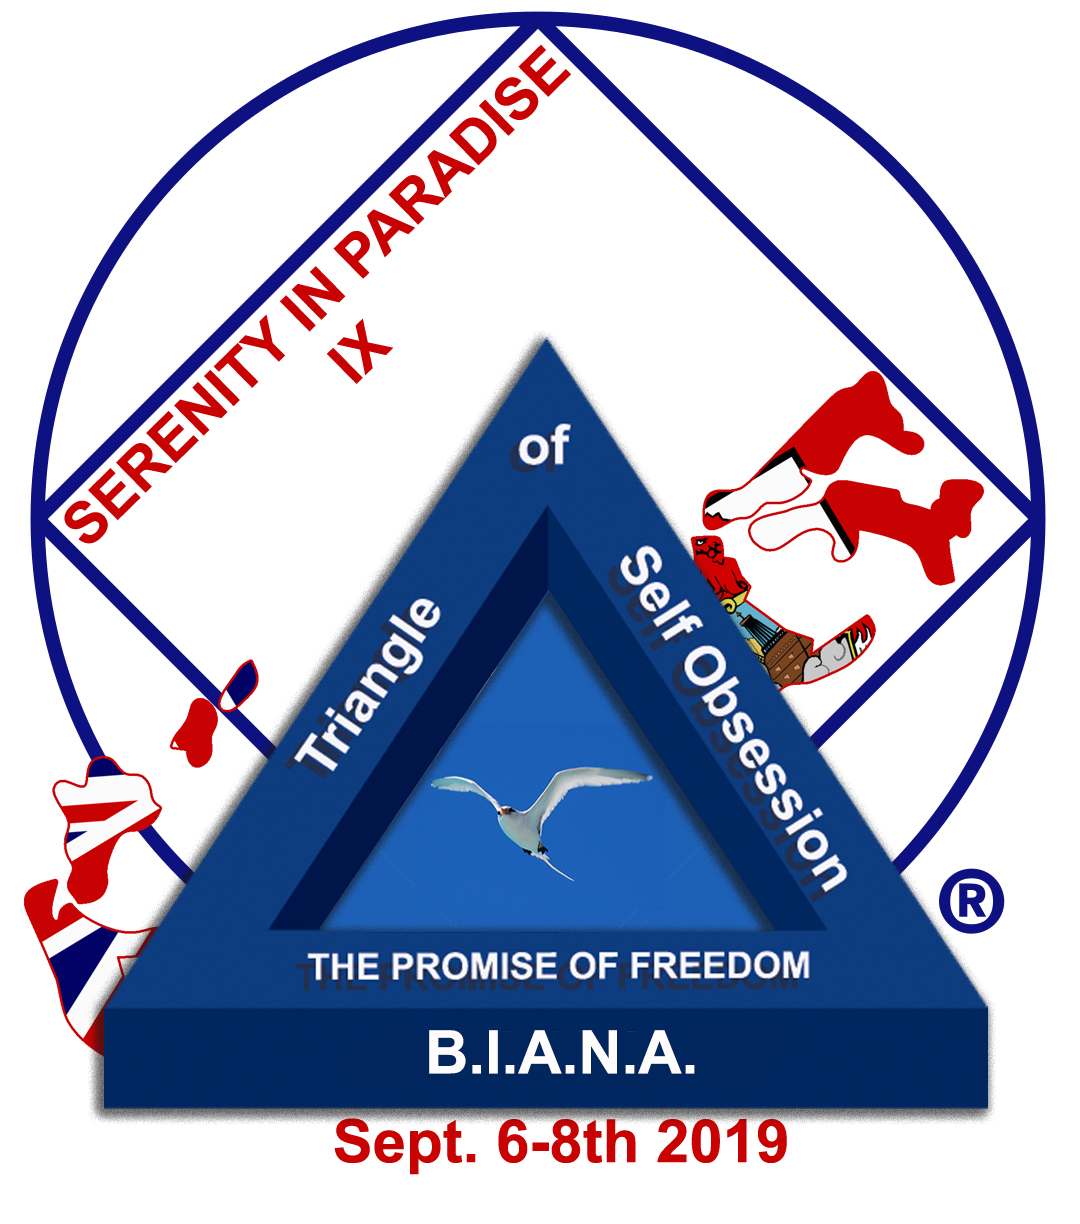 BIANA-2019-Convention-Logo-FINAL.jpg